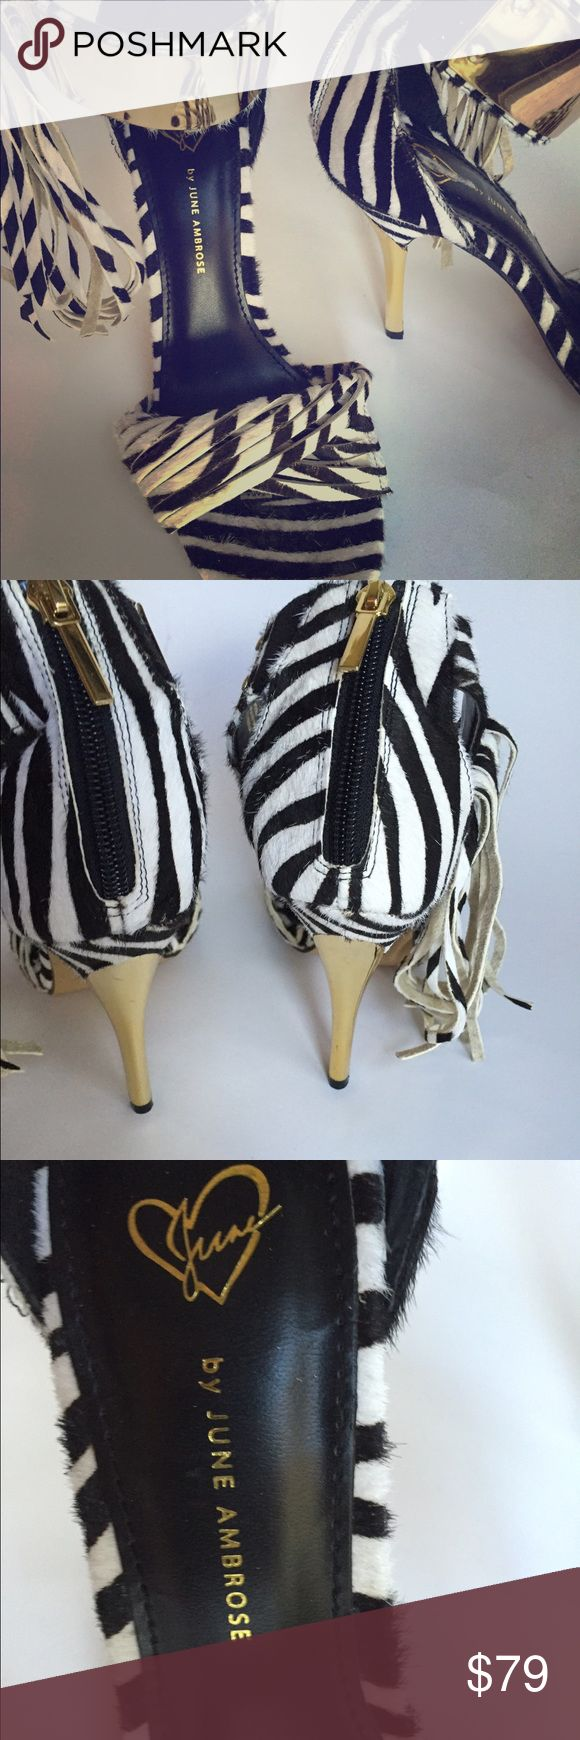 June Ambrose zebra heels Omg!! These statement heals are super standouts. You will be noticed!! Worn twice. June Ambrose Shoes Heels